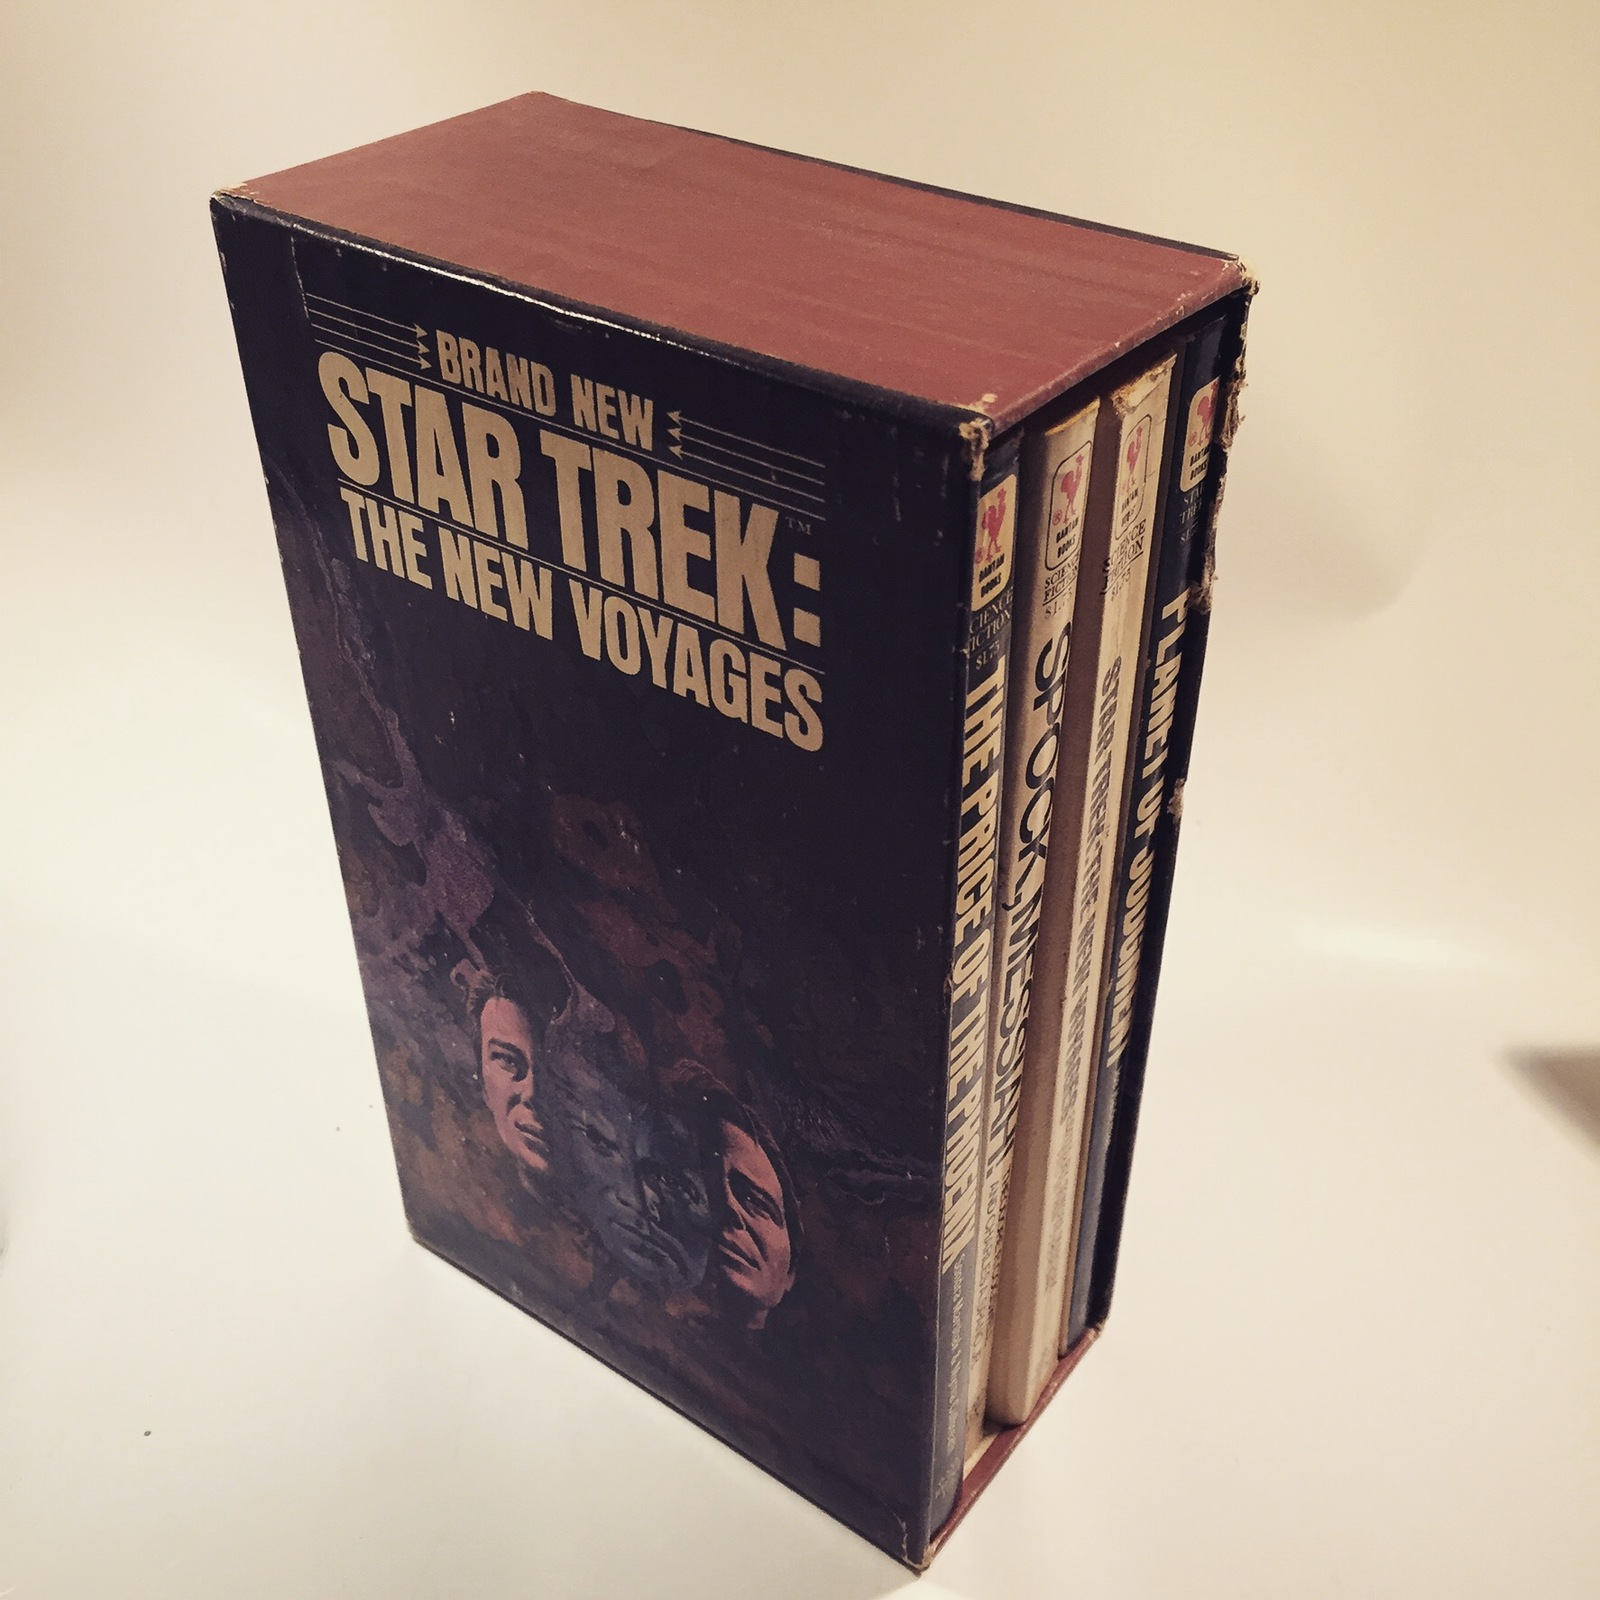 Primary image for STAR TREK 1977 COLLECTIBLE BOXED SET 4 PB BOOKS THE NEW VOYAGES Nimoy Spock